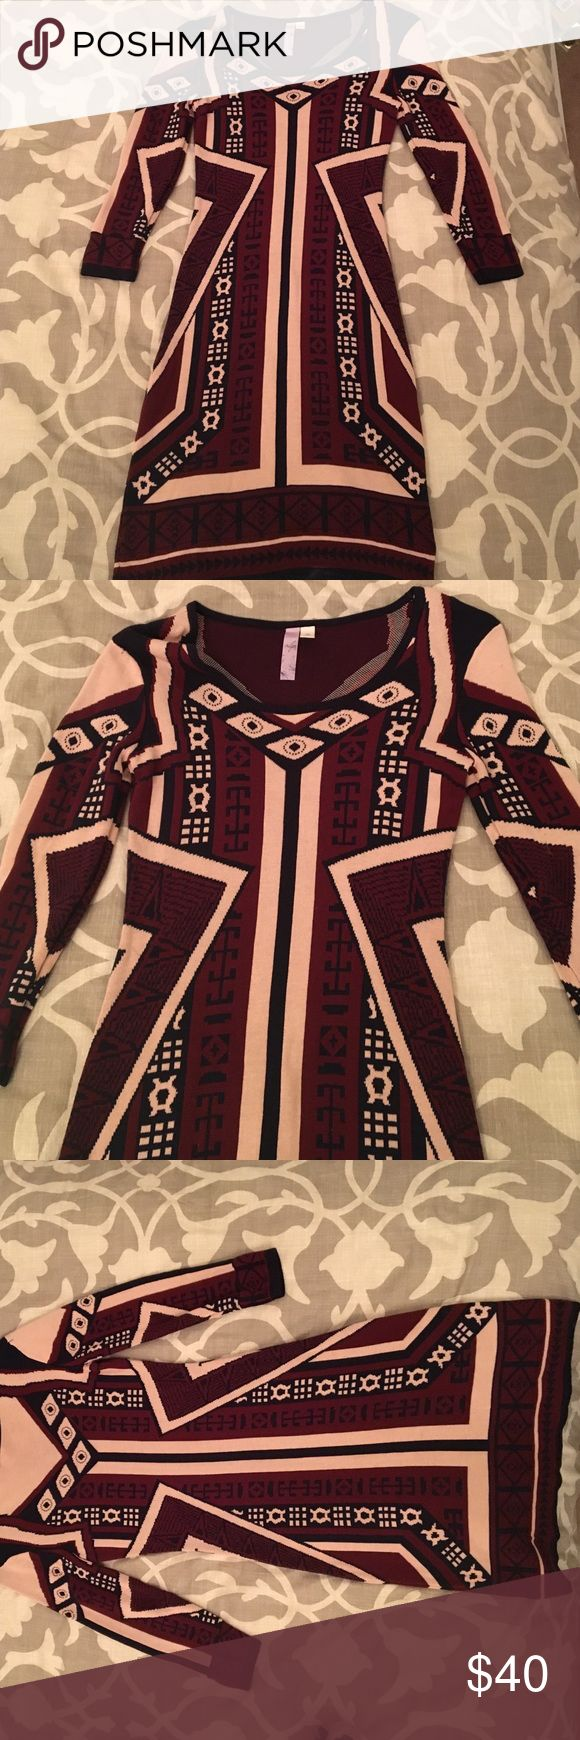 Tribal Sweater Dress Thick and form-fitting dress with tan and black tribal designs in a dark burgundy background Francesca's Collections Dresses Midi